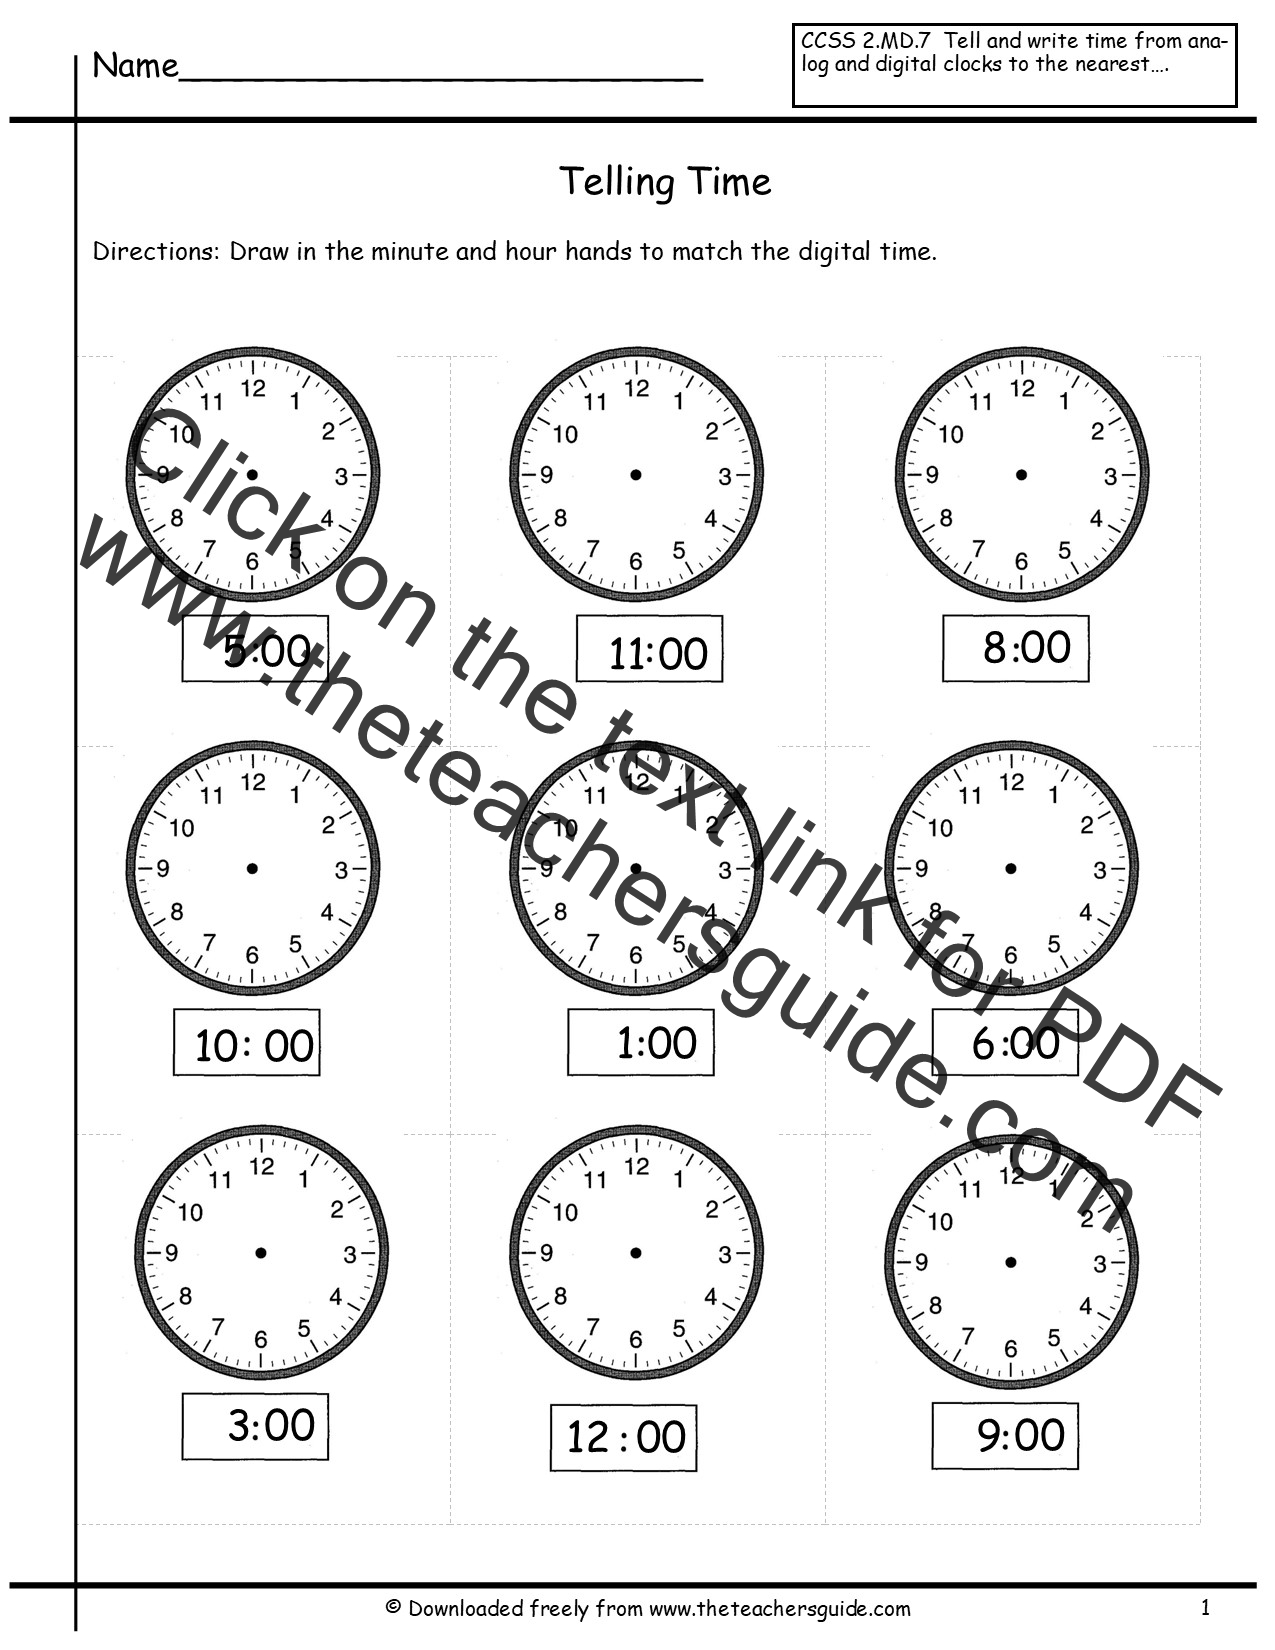 Worksheets Time Telling Worksheets telling time worksheets from the teachers guide to nearest hour worksheet